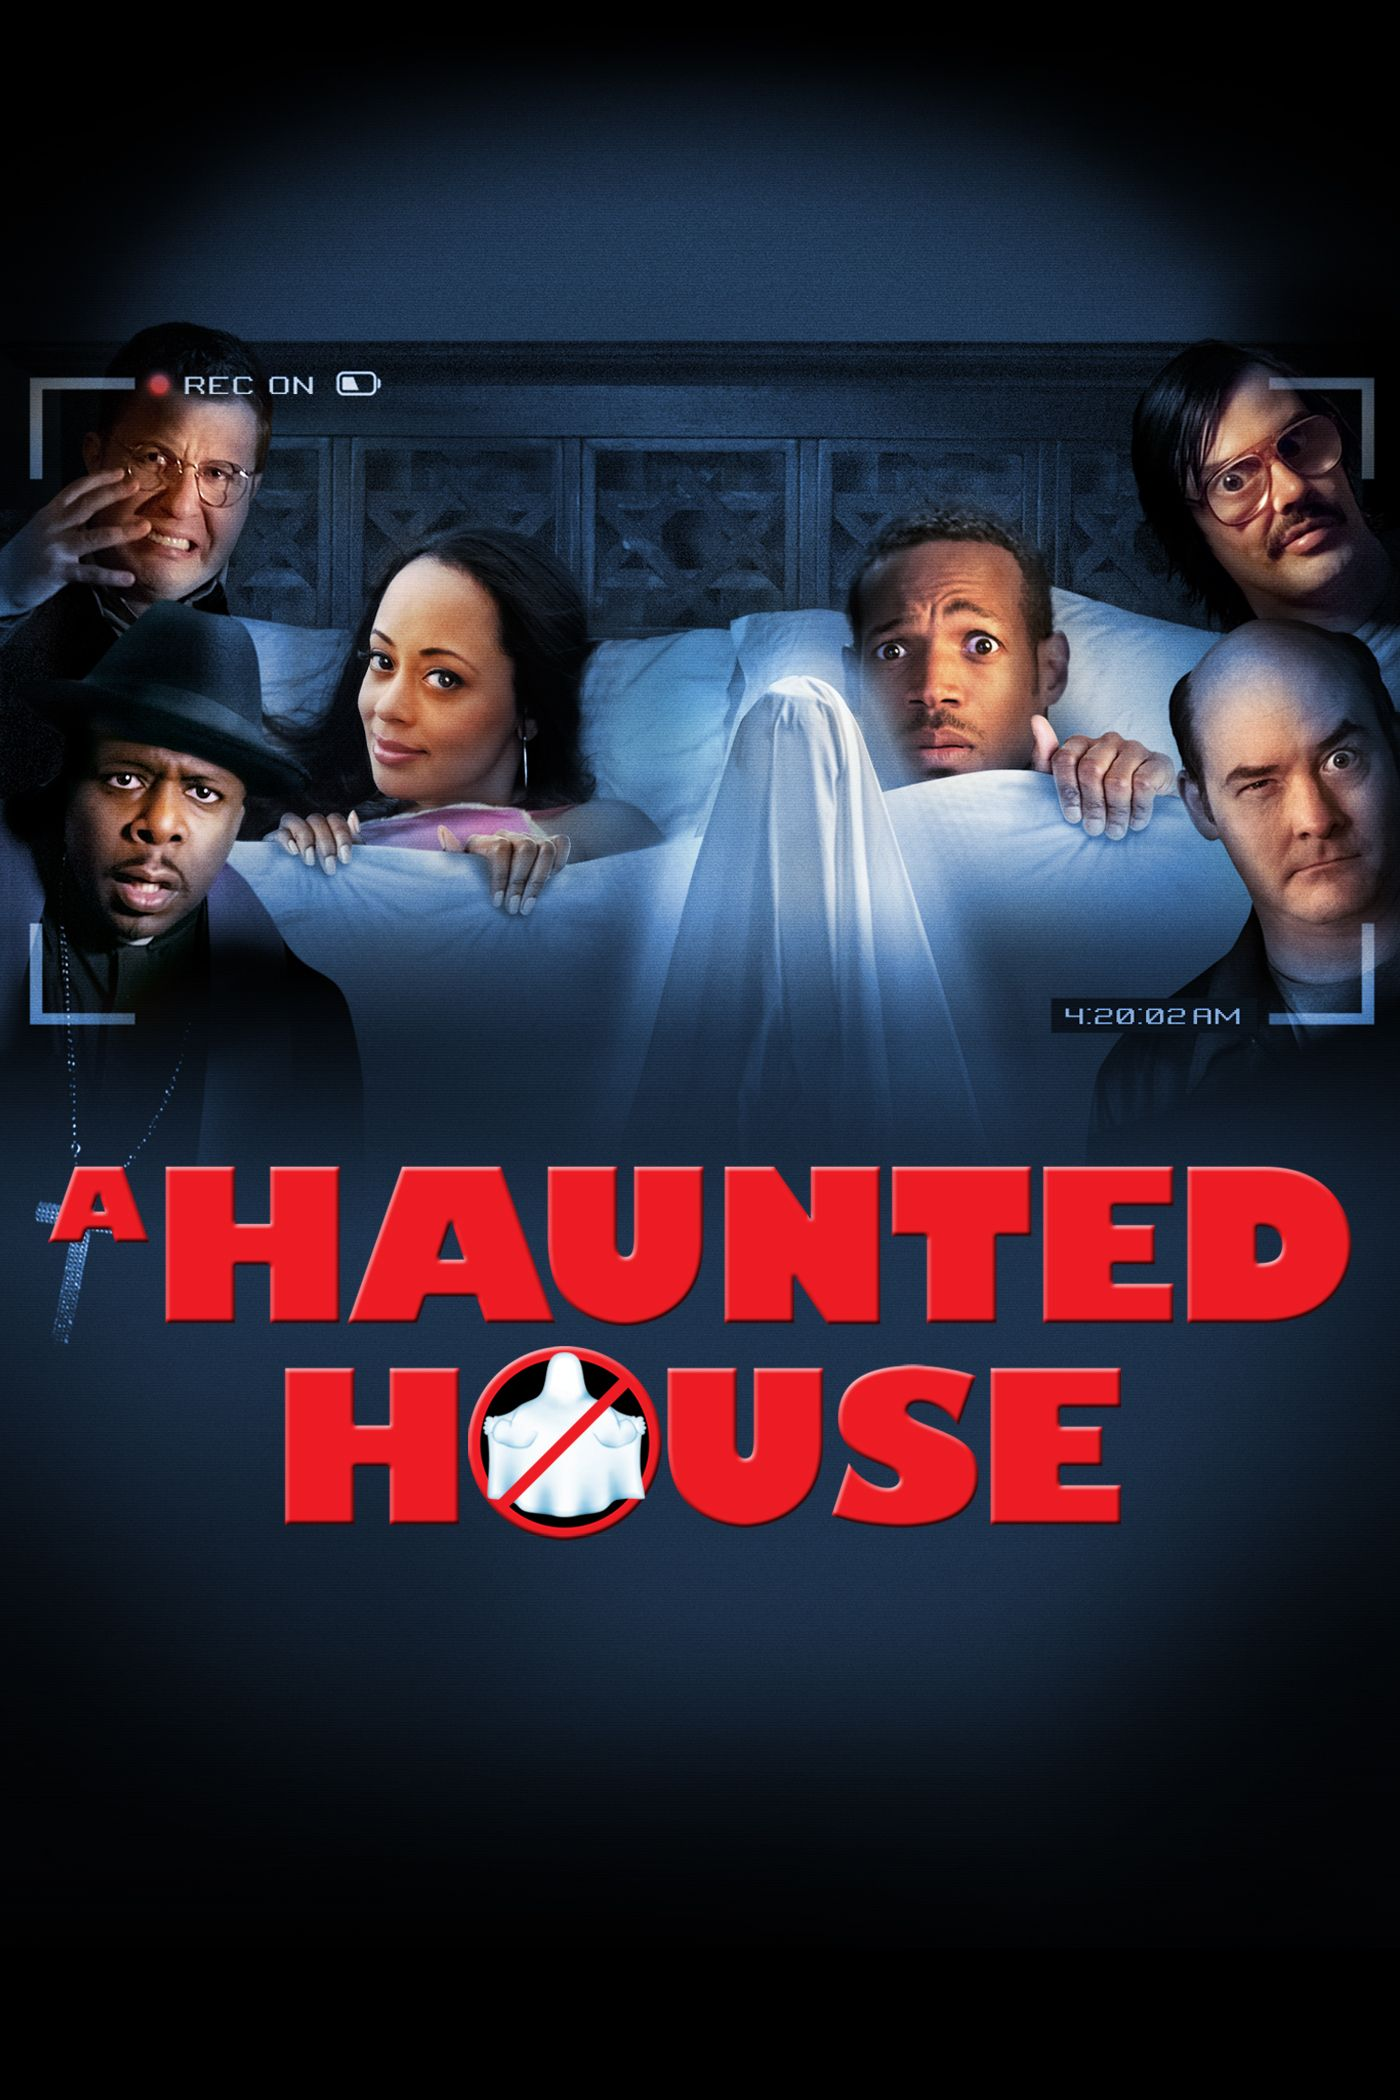 A Haunted House 2013 Movies Poster